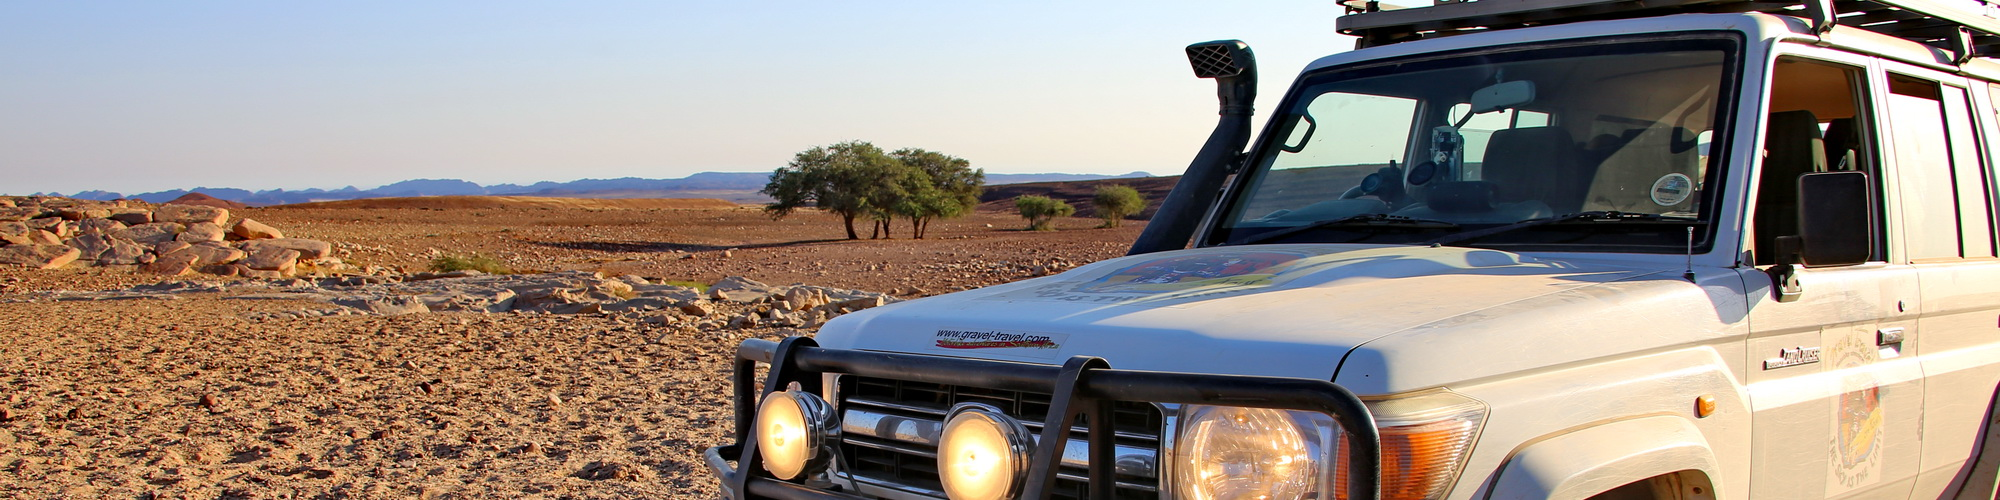 namibia-offroad-020.jpg